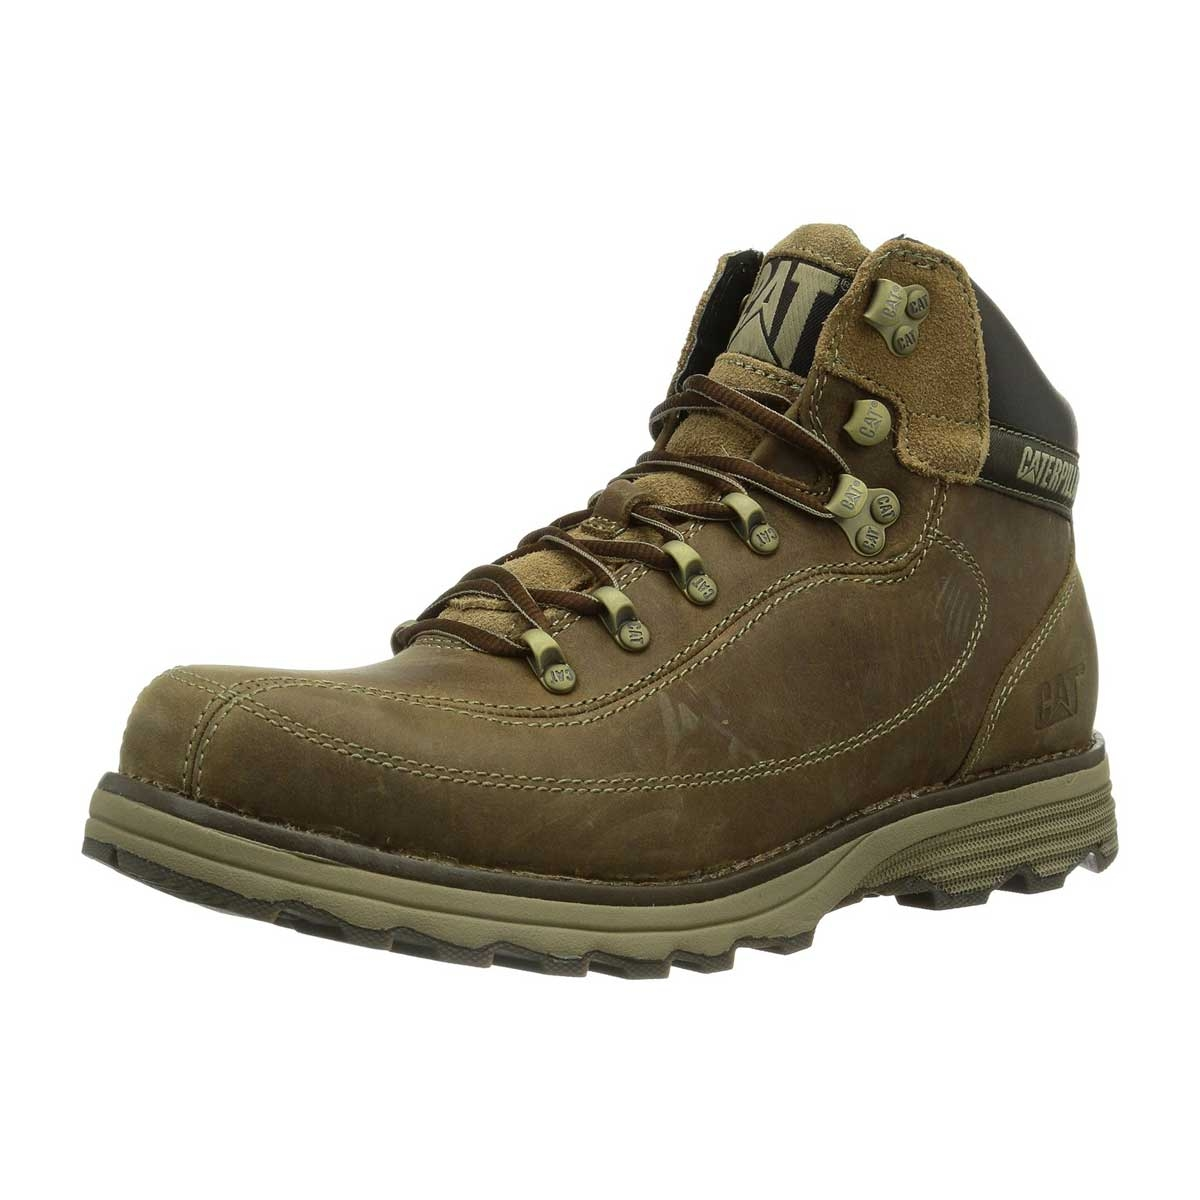 4fc5dd82053 Image of CAT Highbury Mens Walking Boots (Men's) - Desert   Cocoa